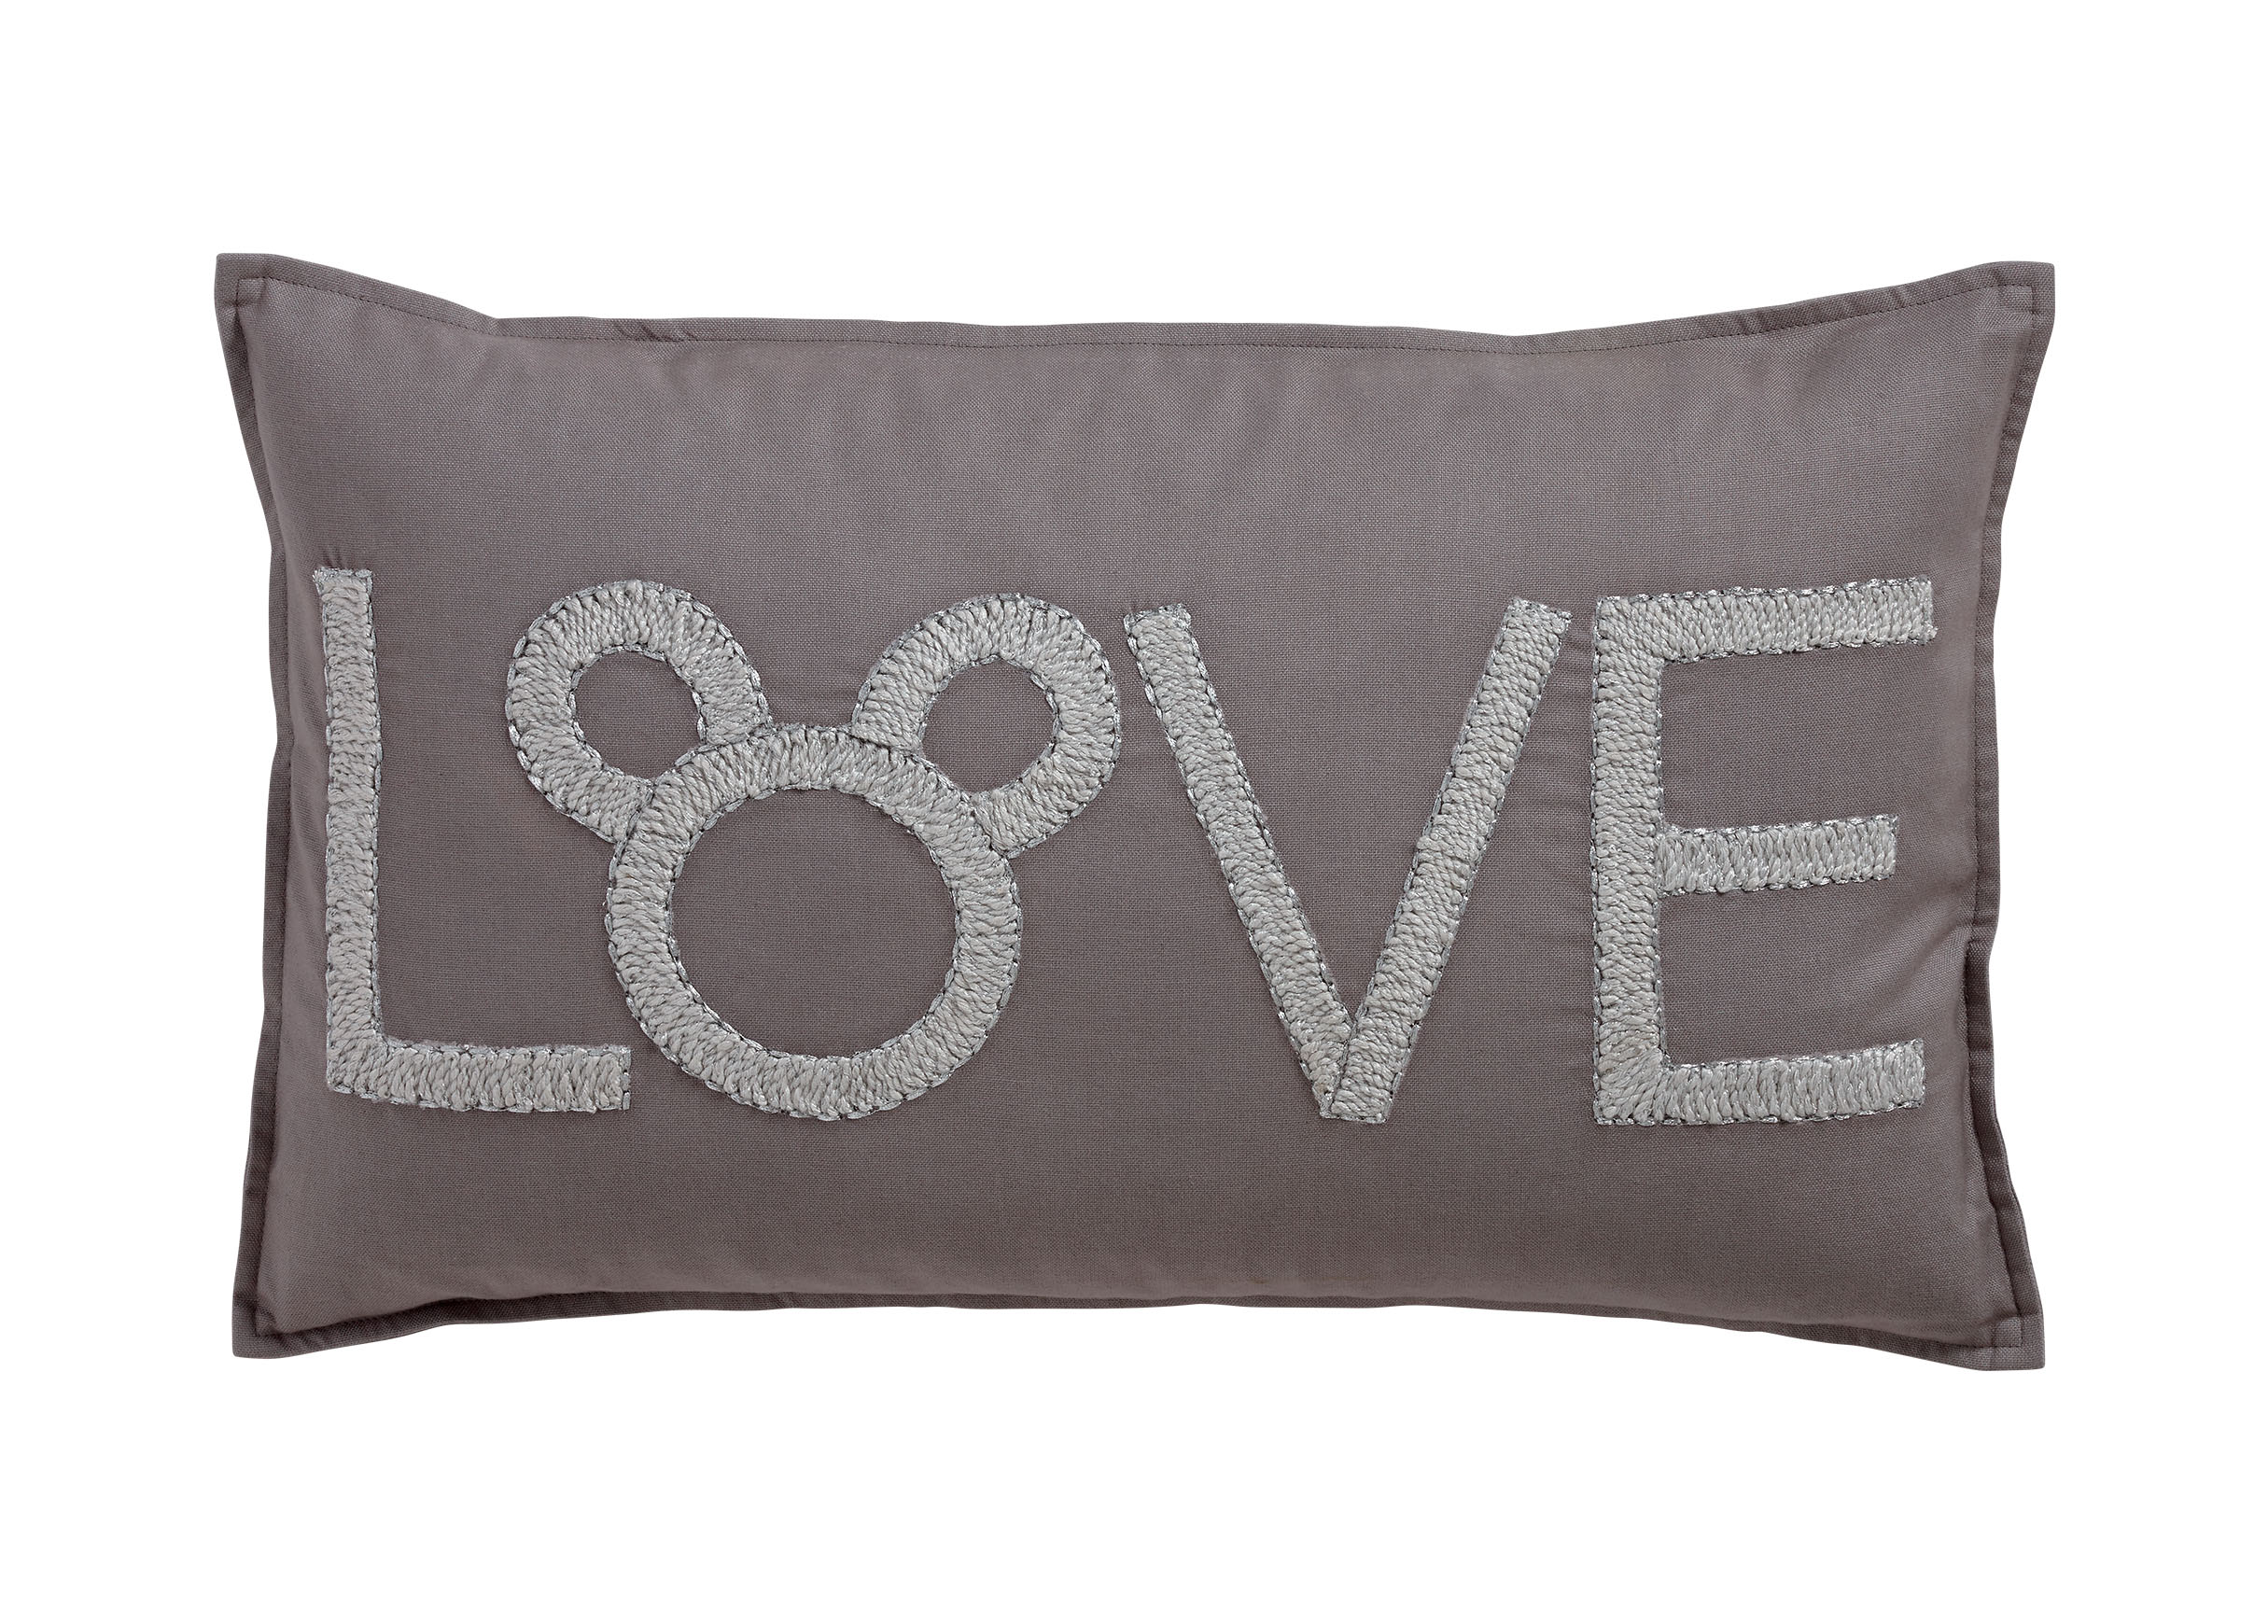 Kussens H&m Mickey Mouse Love Pillow Pillows